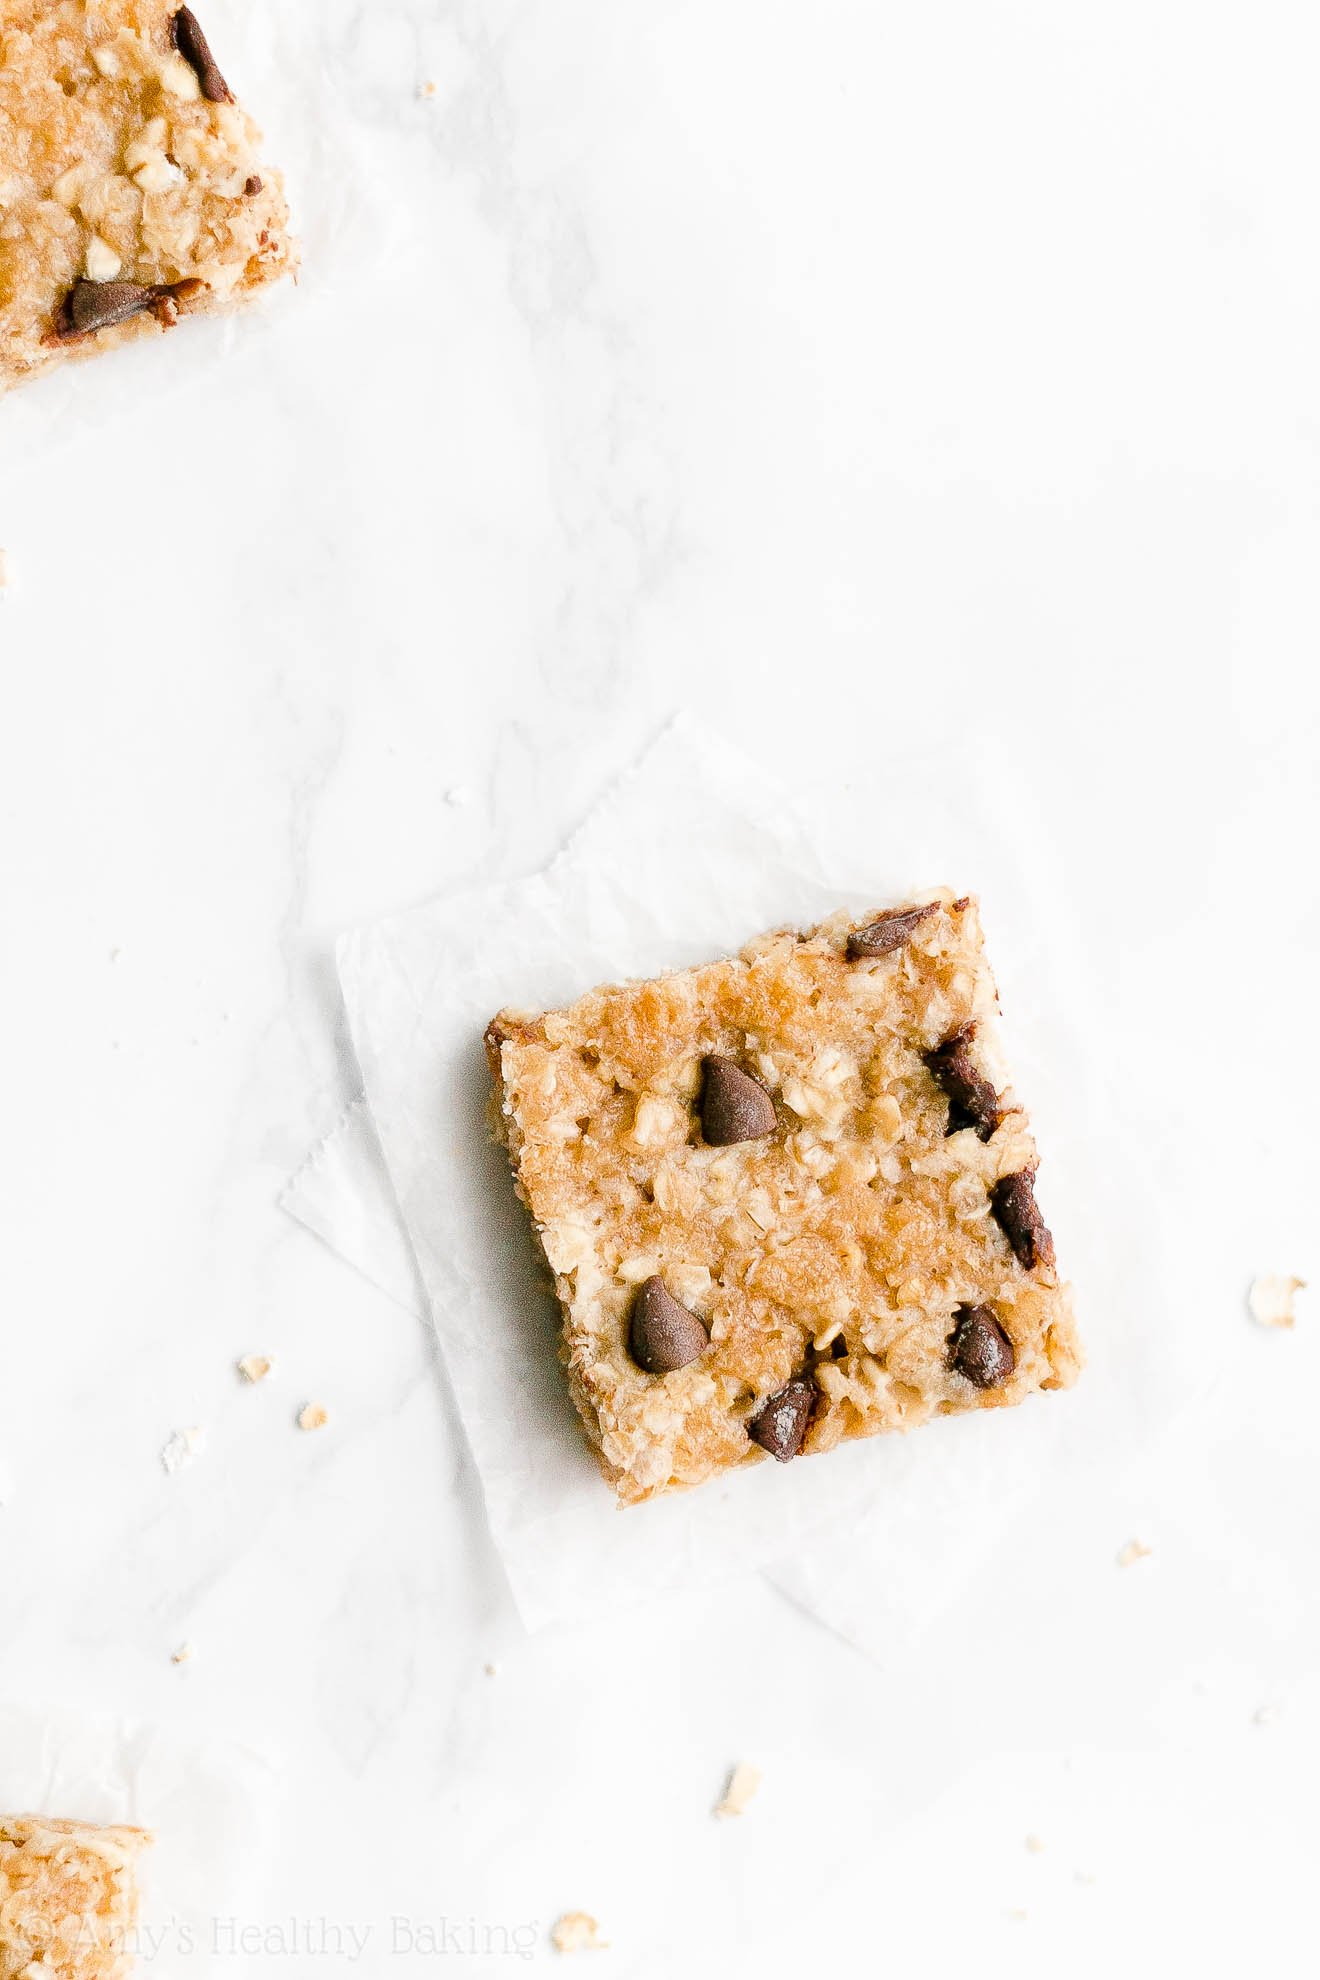 Easy Healthy Chewy Low Sugar Chocolate Chip Peanut Butter Granola Bars